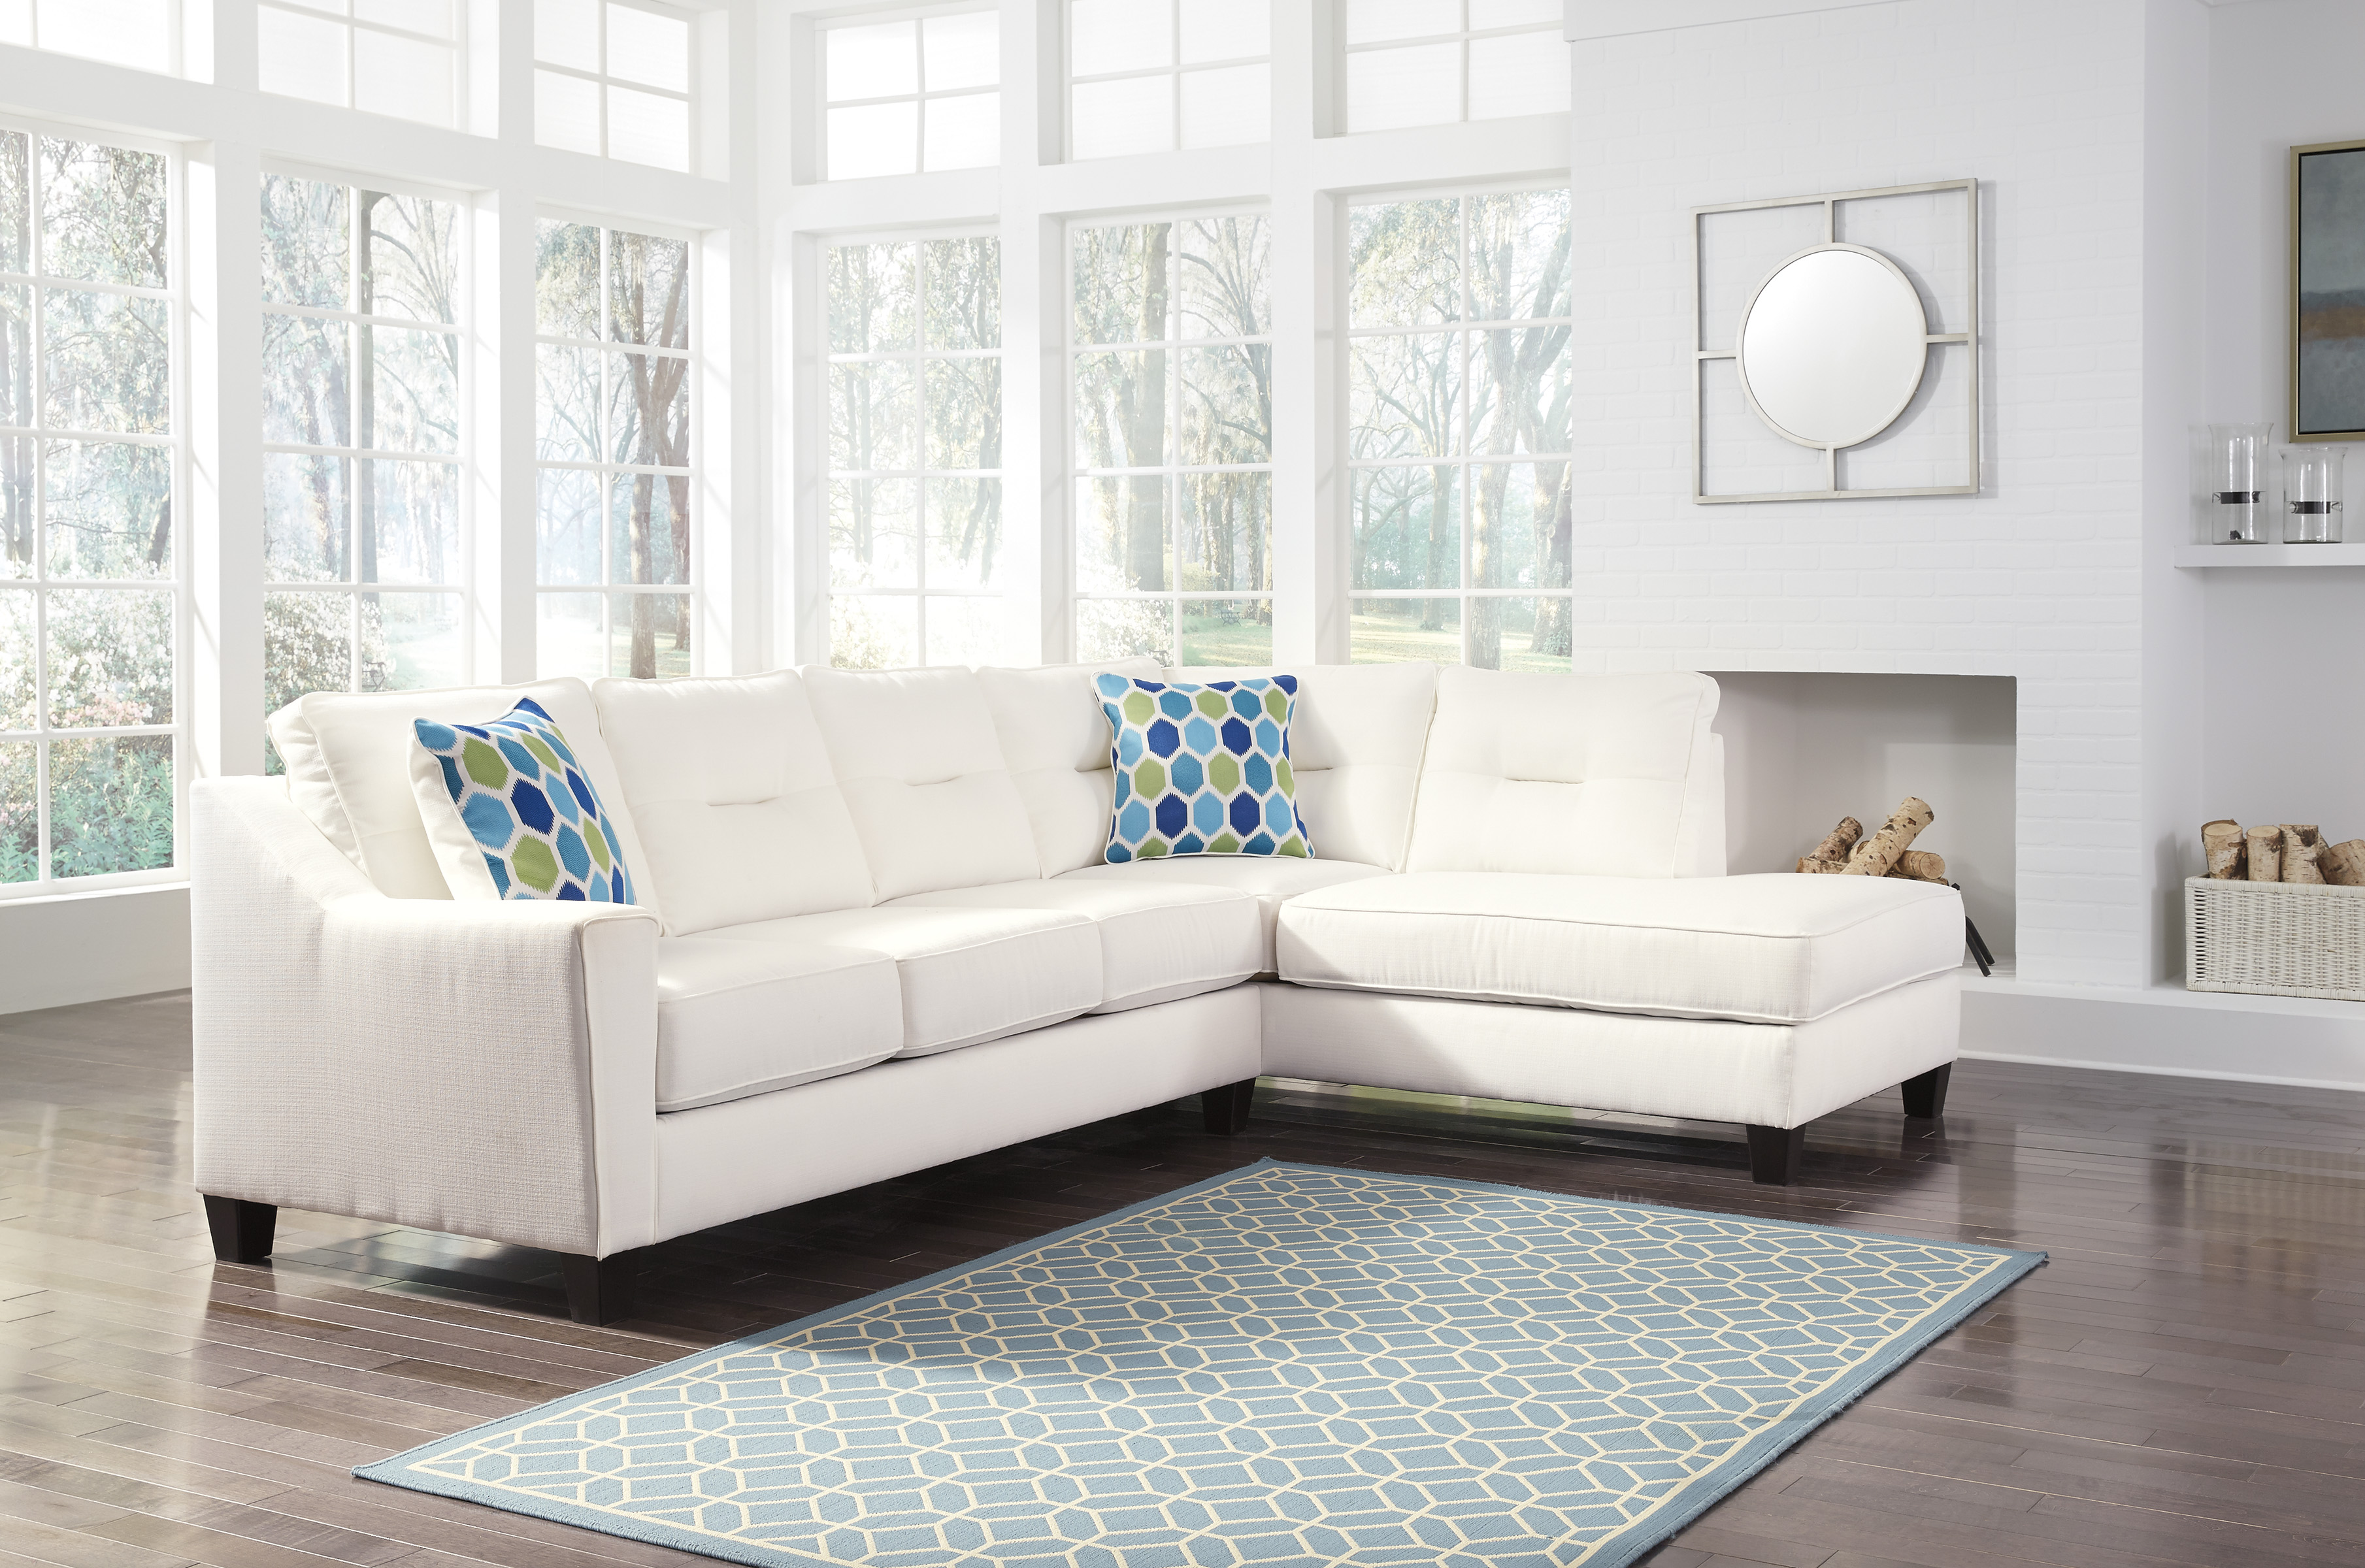 Kirwin White Sectional by Ashley Furniture Nuvella Fabrics